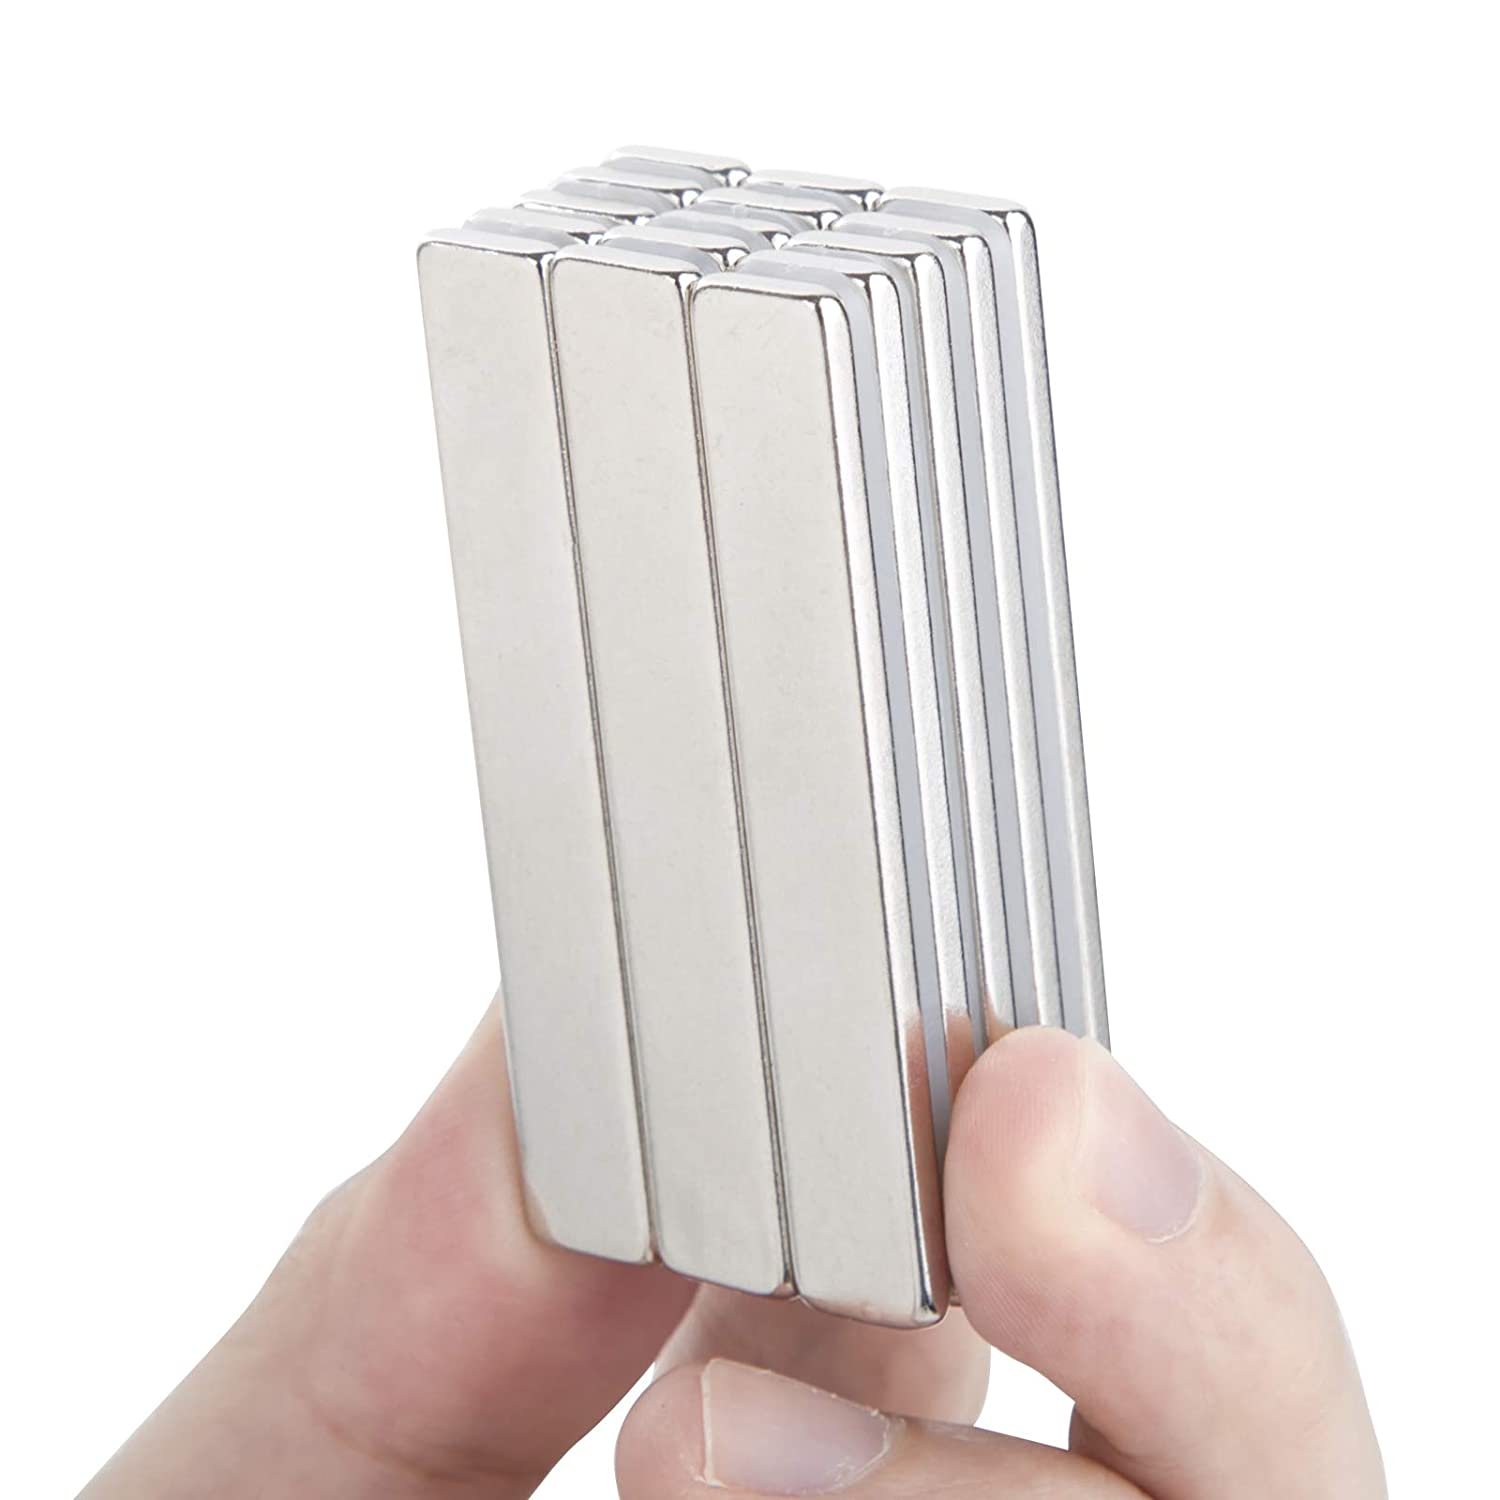 Pack of 15 60 x 10 x 3 mm Craft and Office Magnets NBZXSYMAG Powerful Neodymium Bar Magnets,Strong Permanent Rare Earth Magnets for Fridge Scientific DIY Building